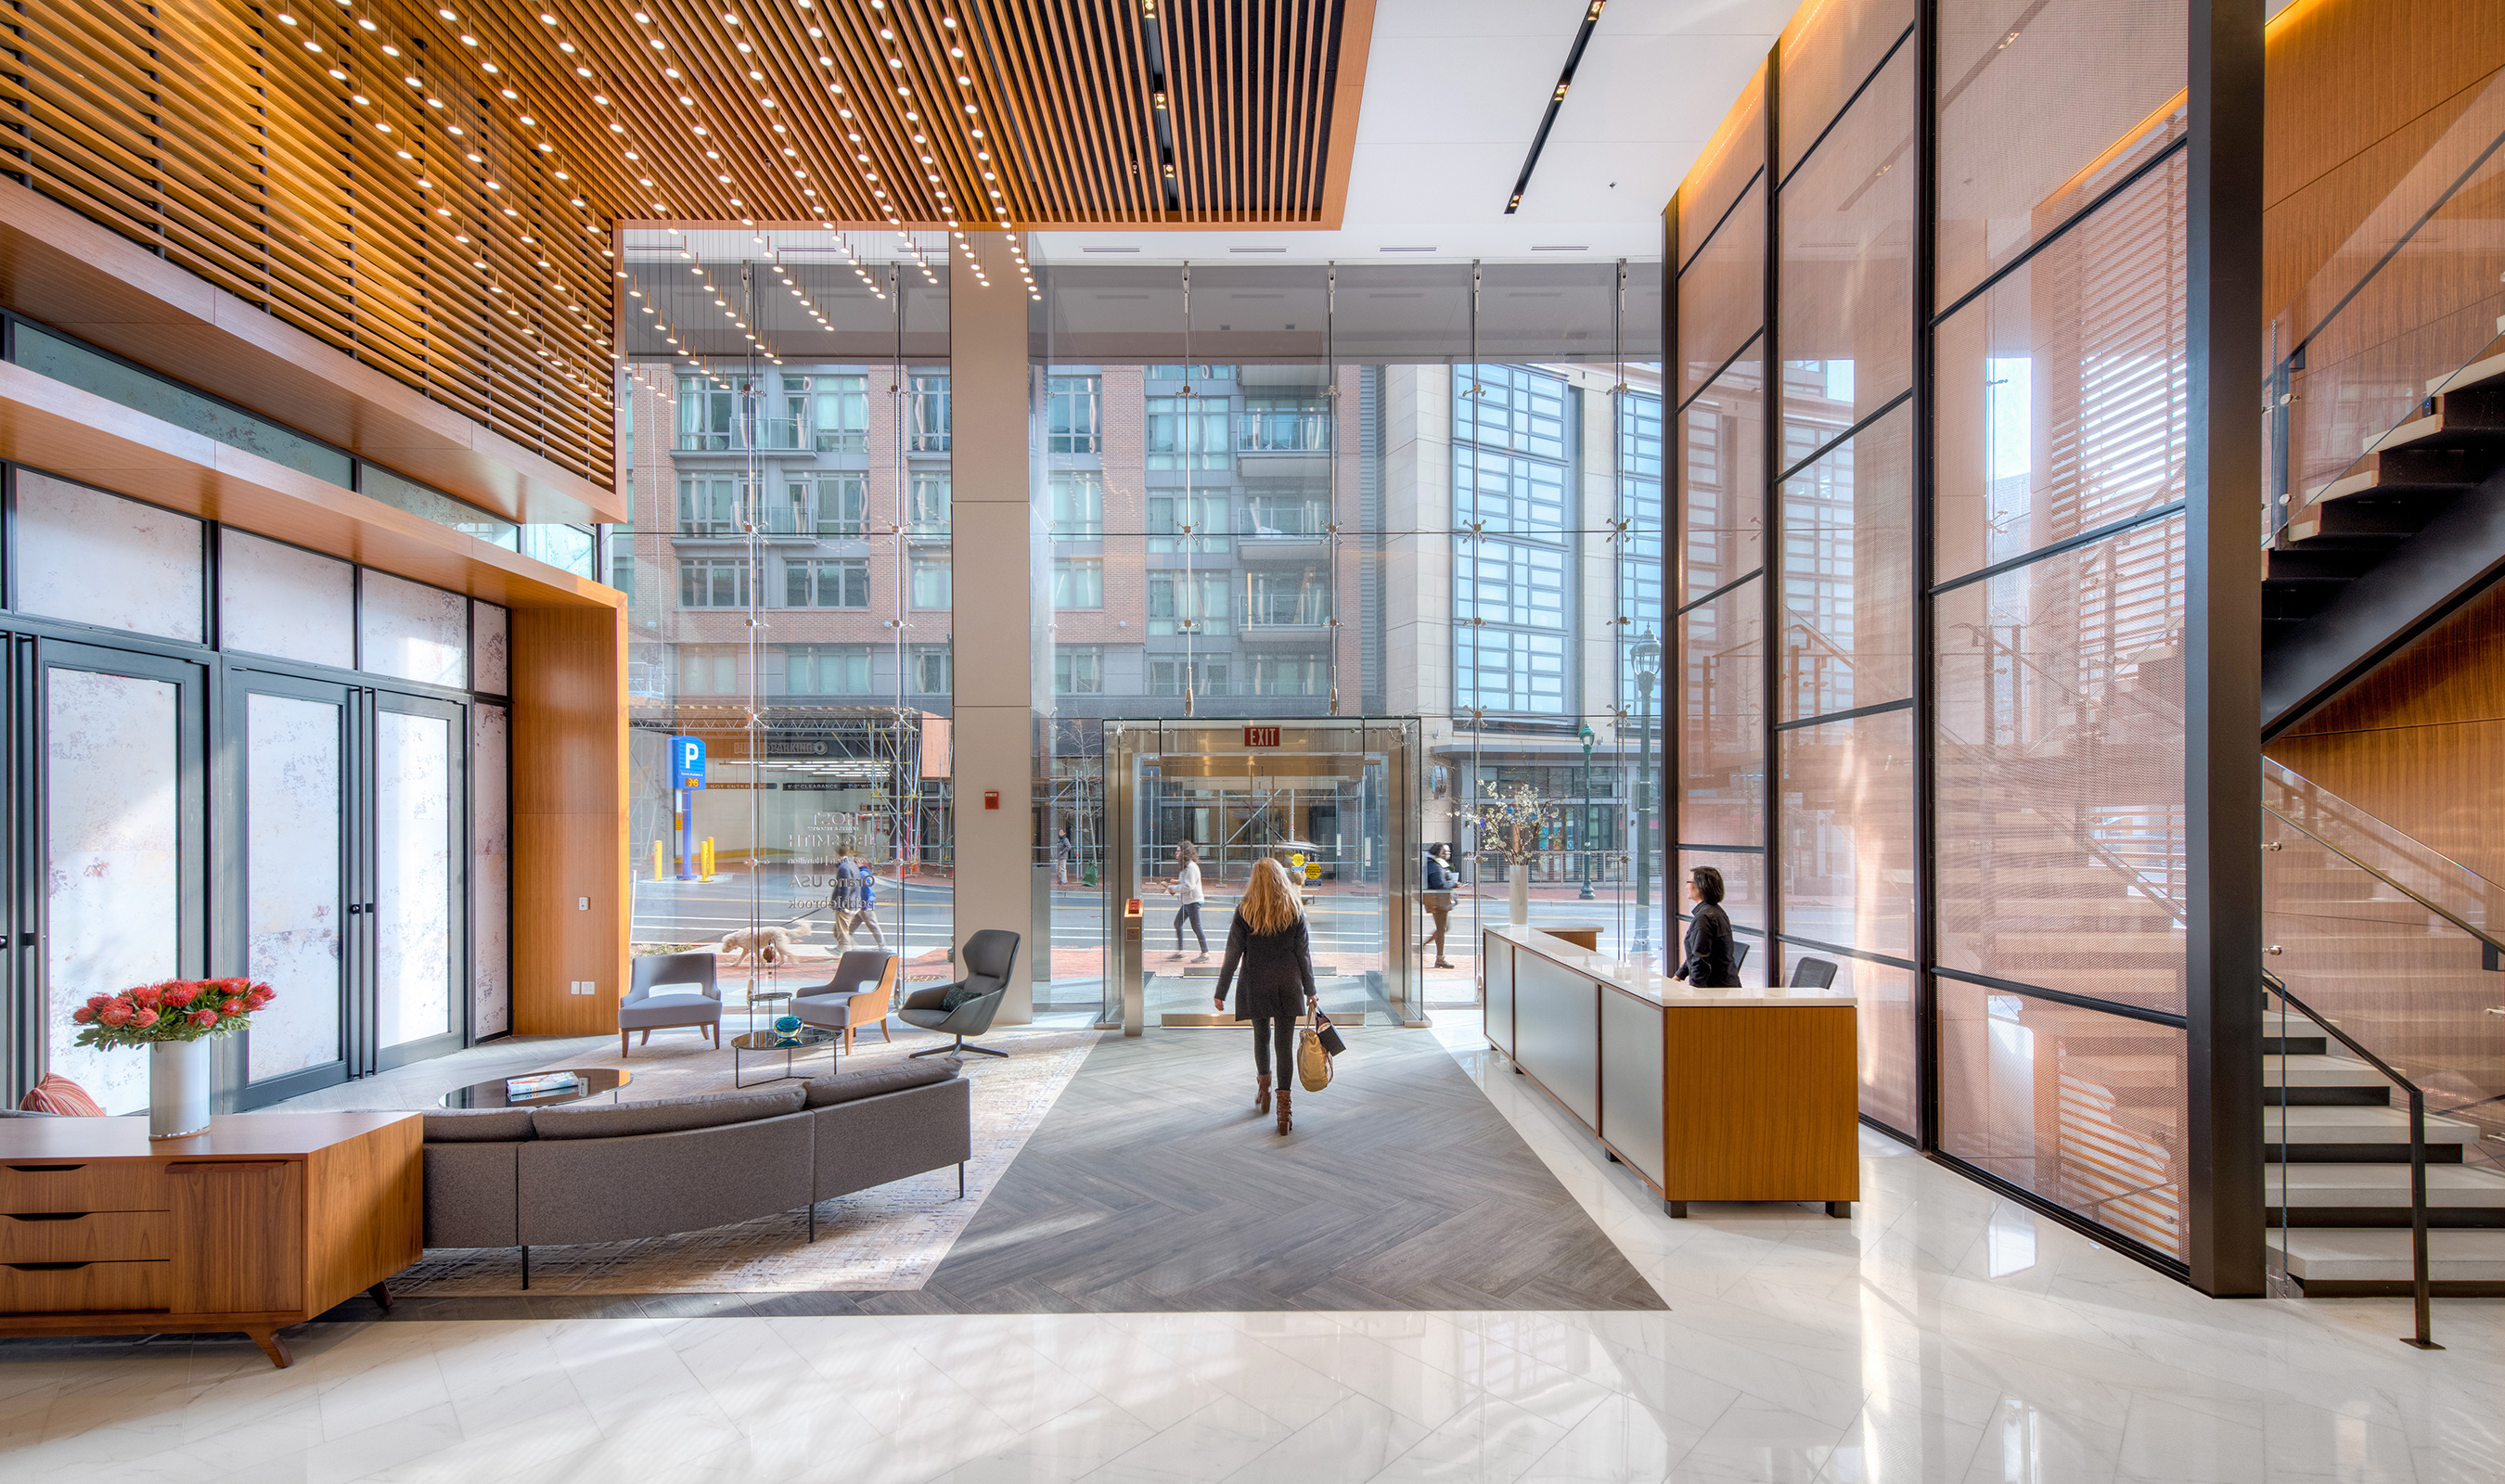 The stainless steel and copper accent wall adds warmth to the office lobby.